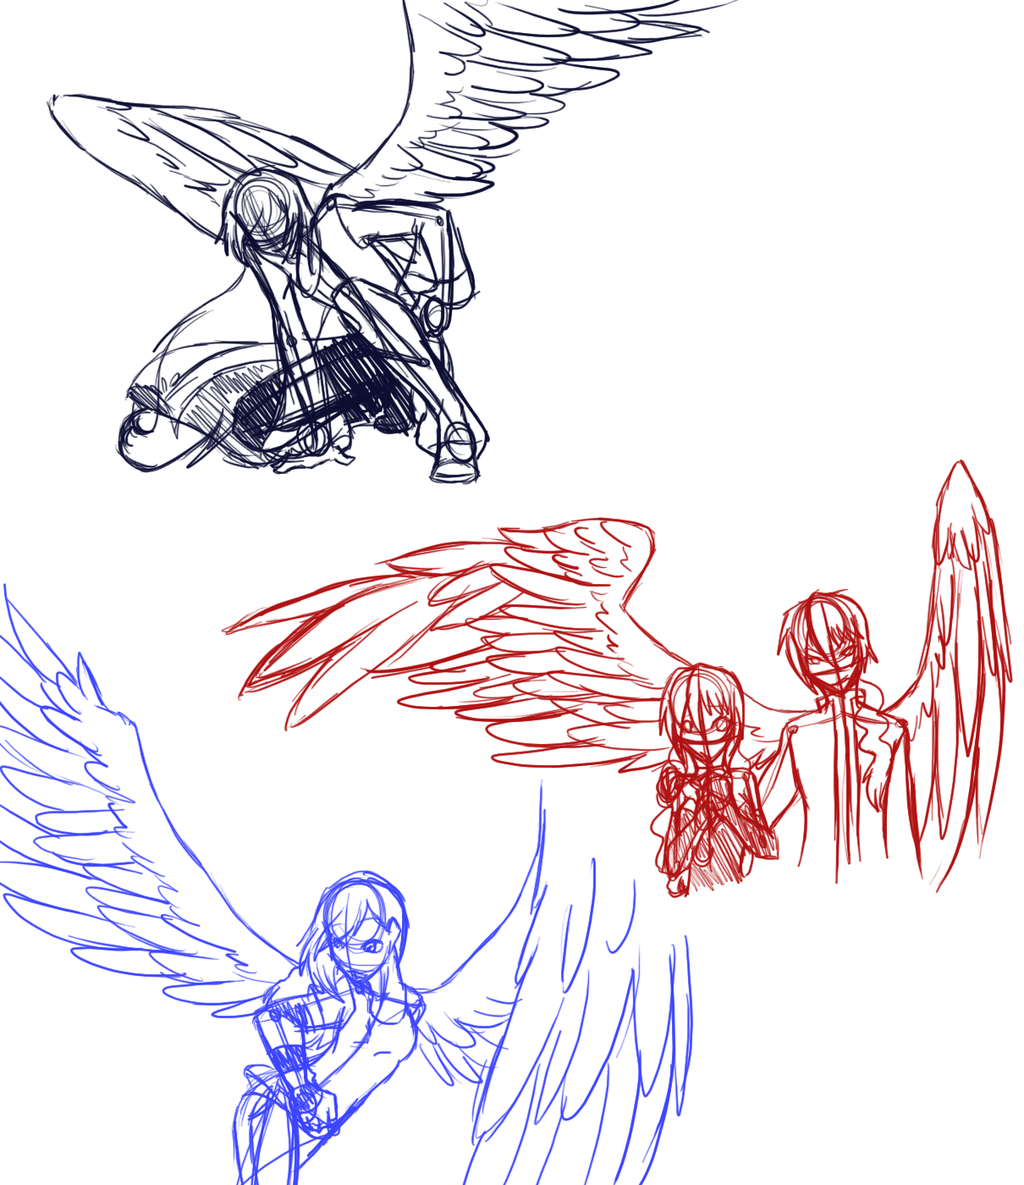 winged poses | Anime People With Wings Drawings H.a ...